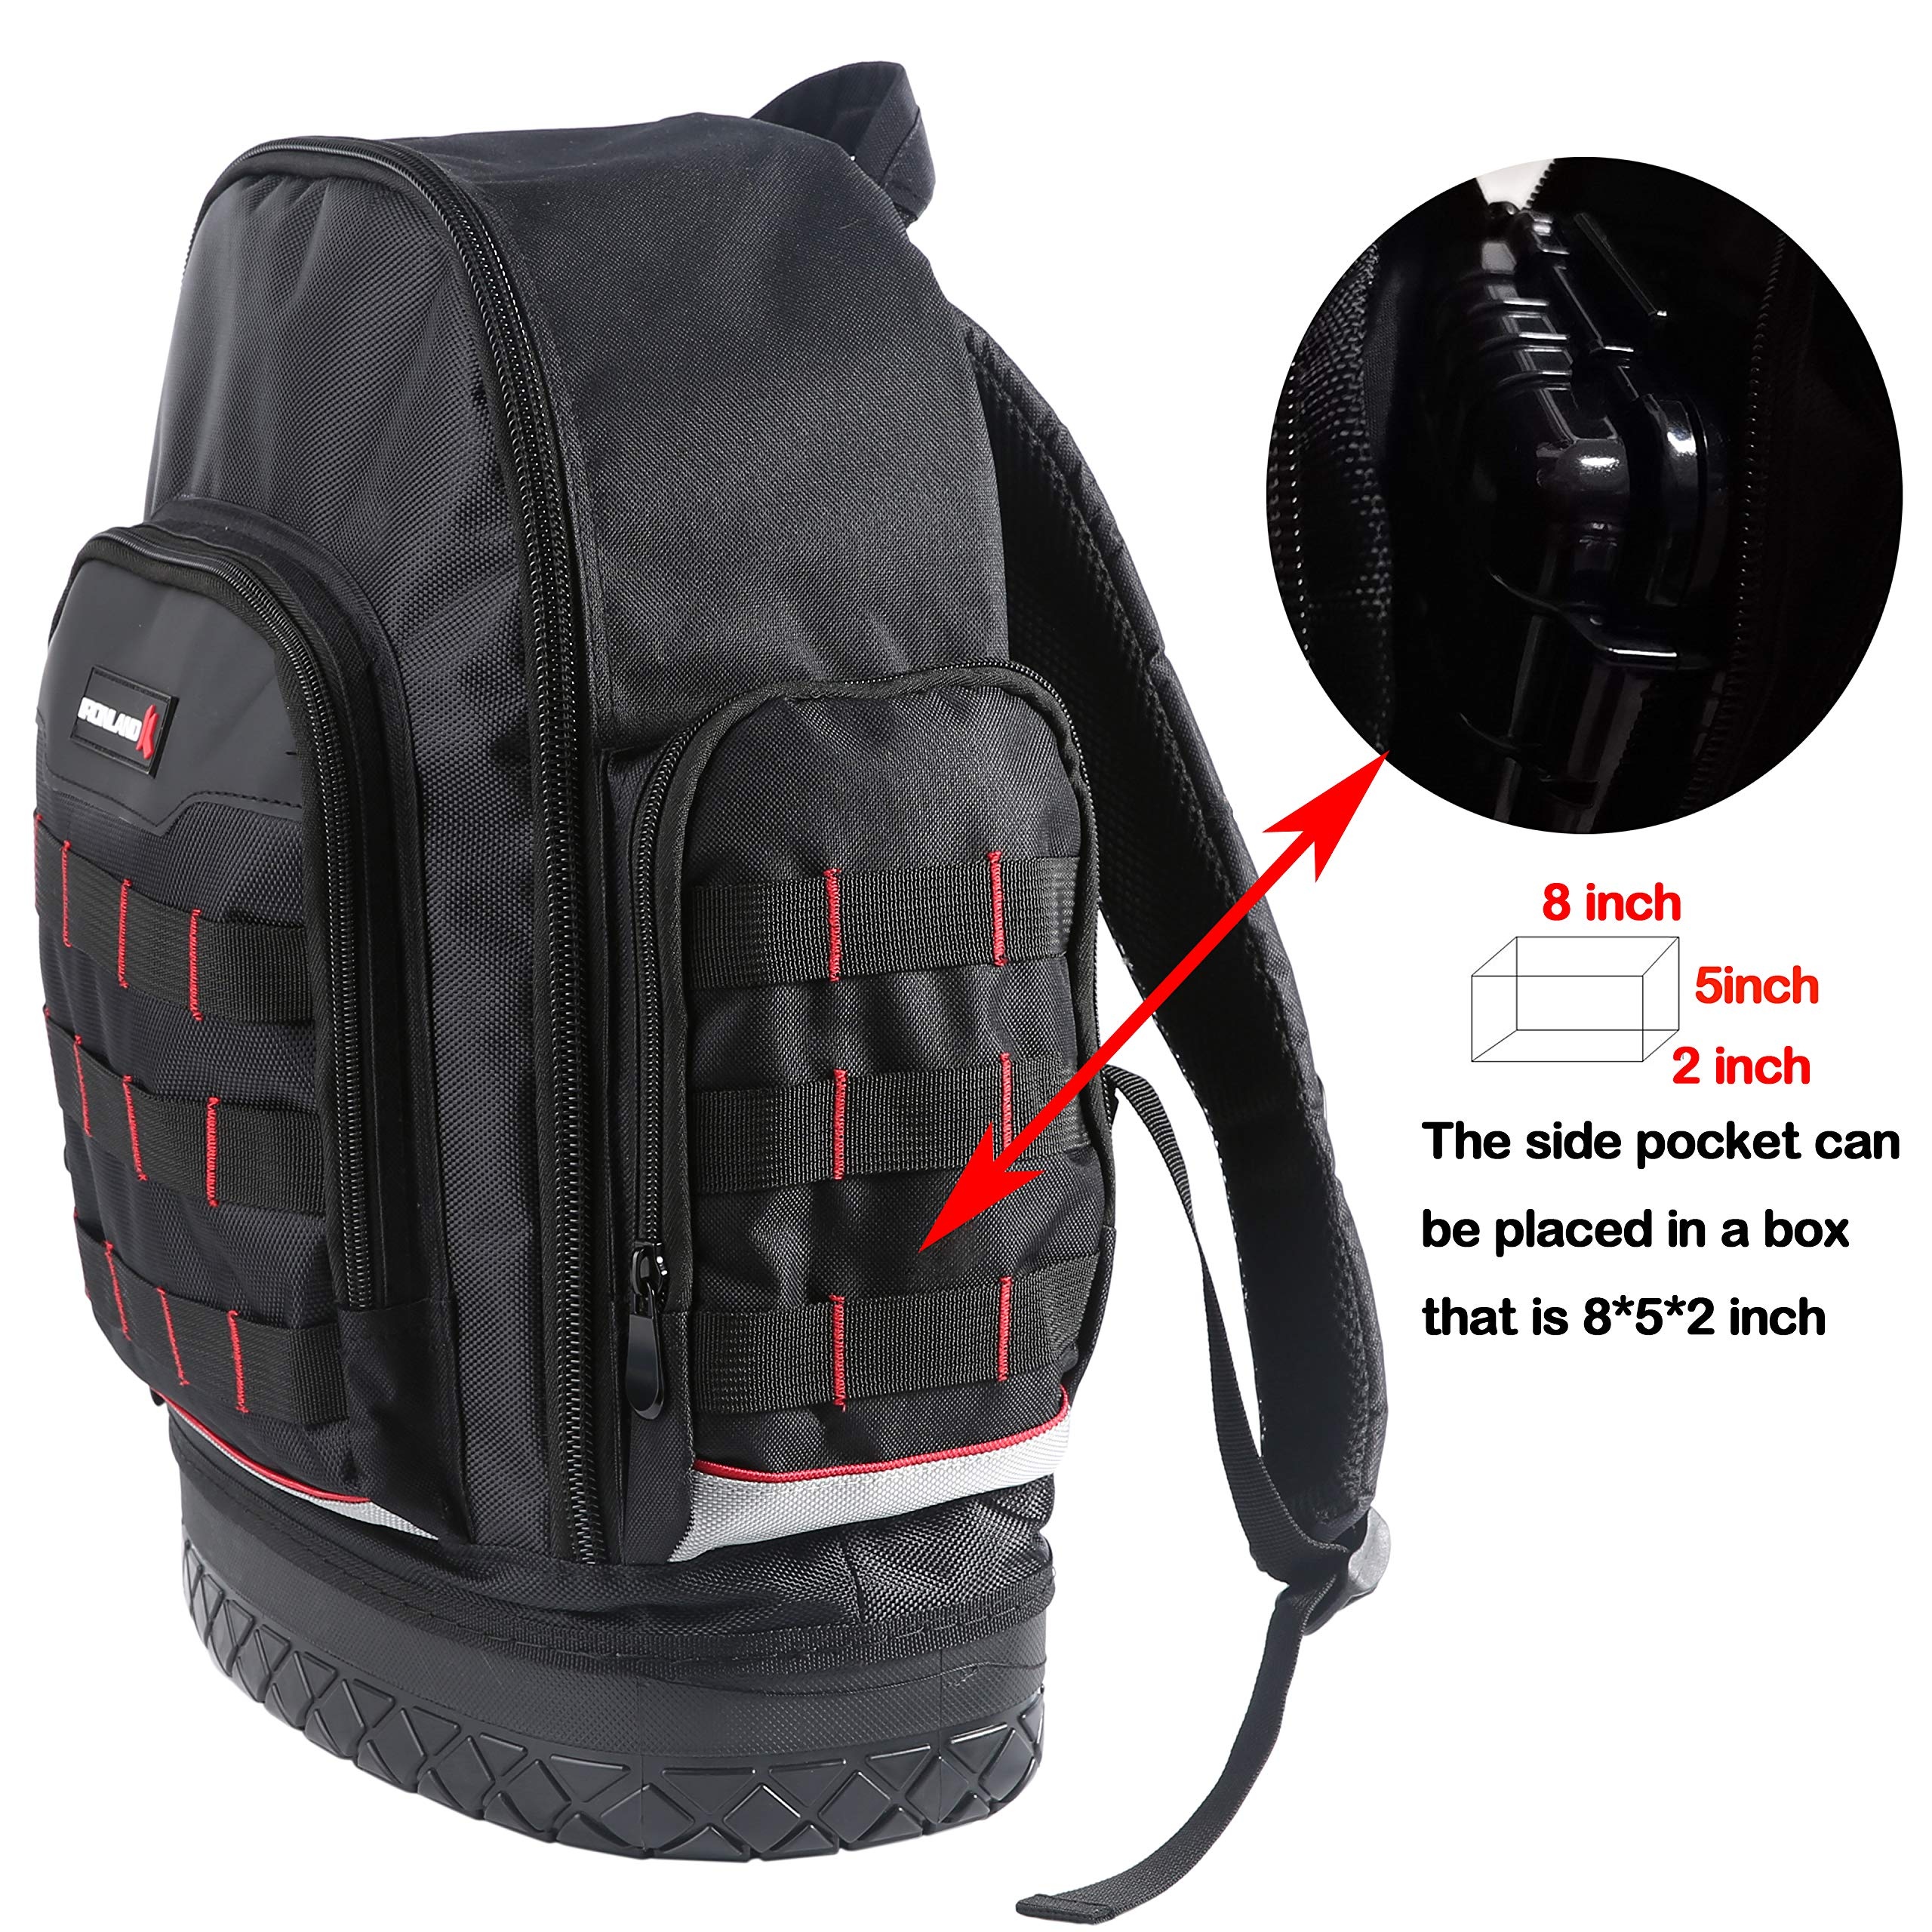 Electrician Tool Bag Backpack with Waterproof Molded Base, BP-005 by IRONLAND (Image #5)